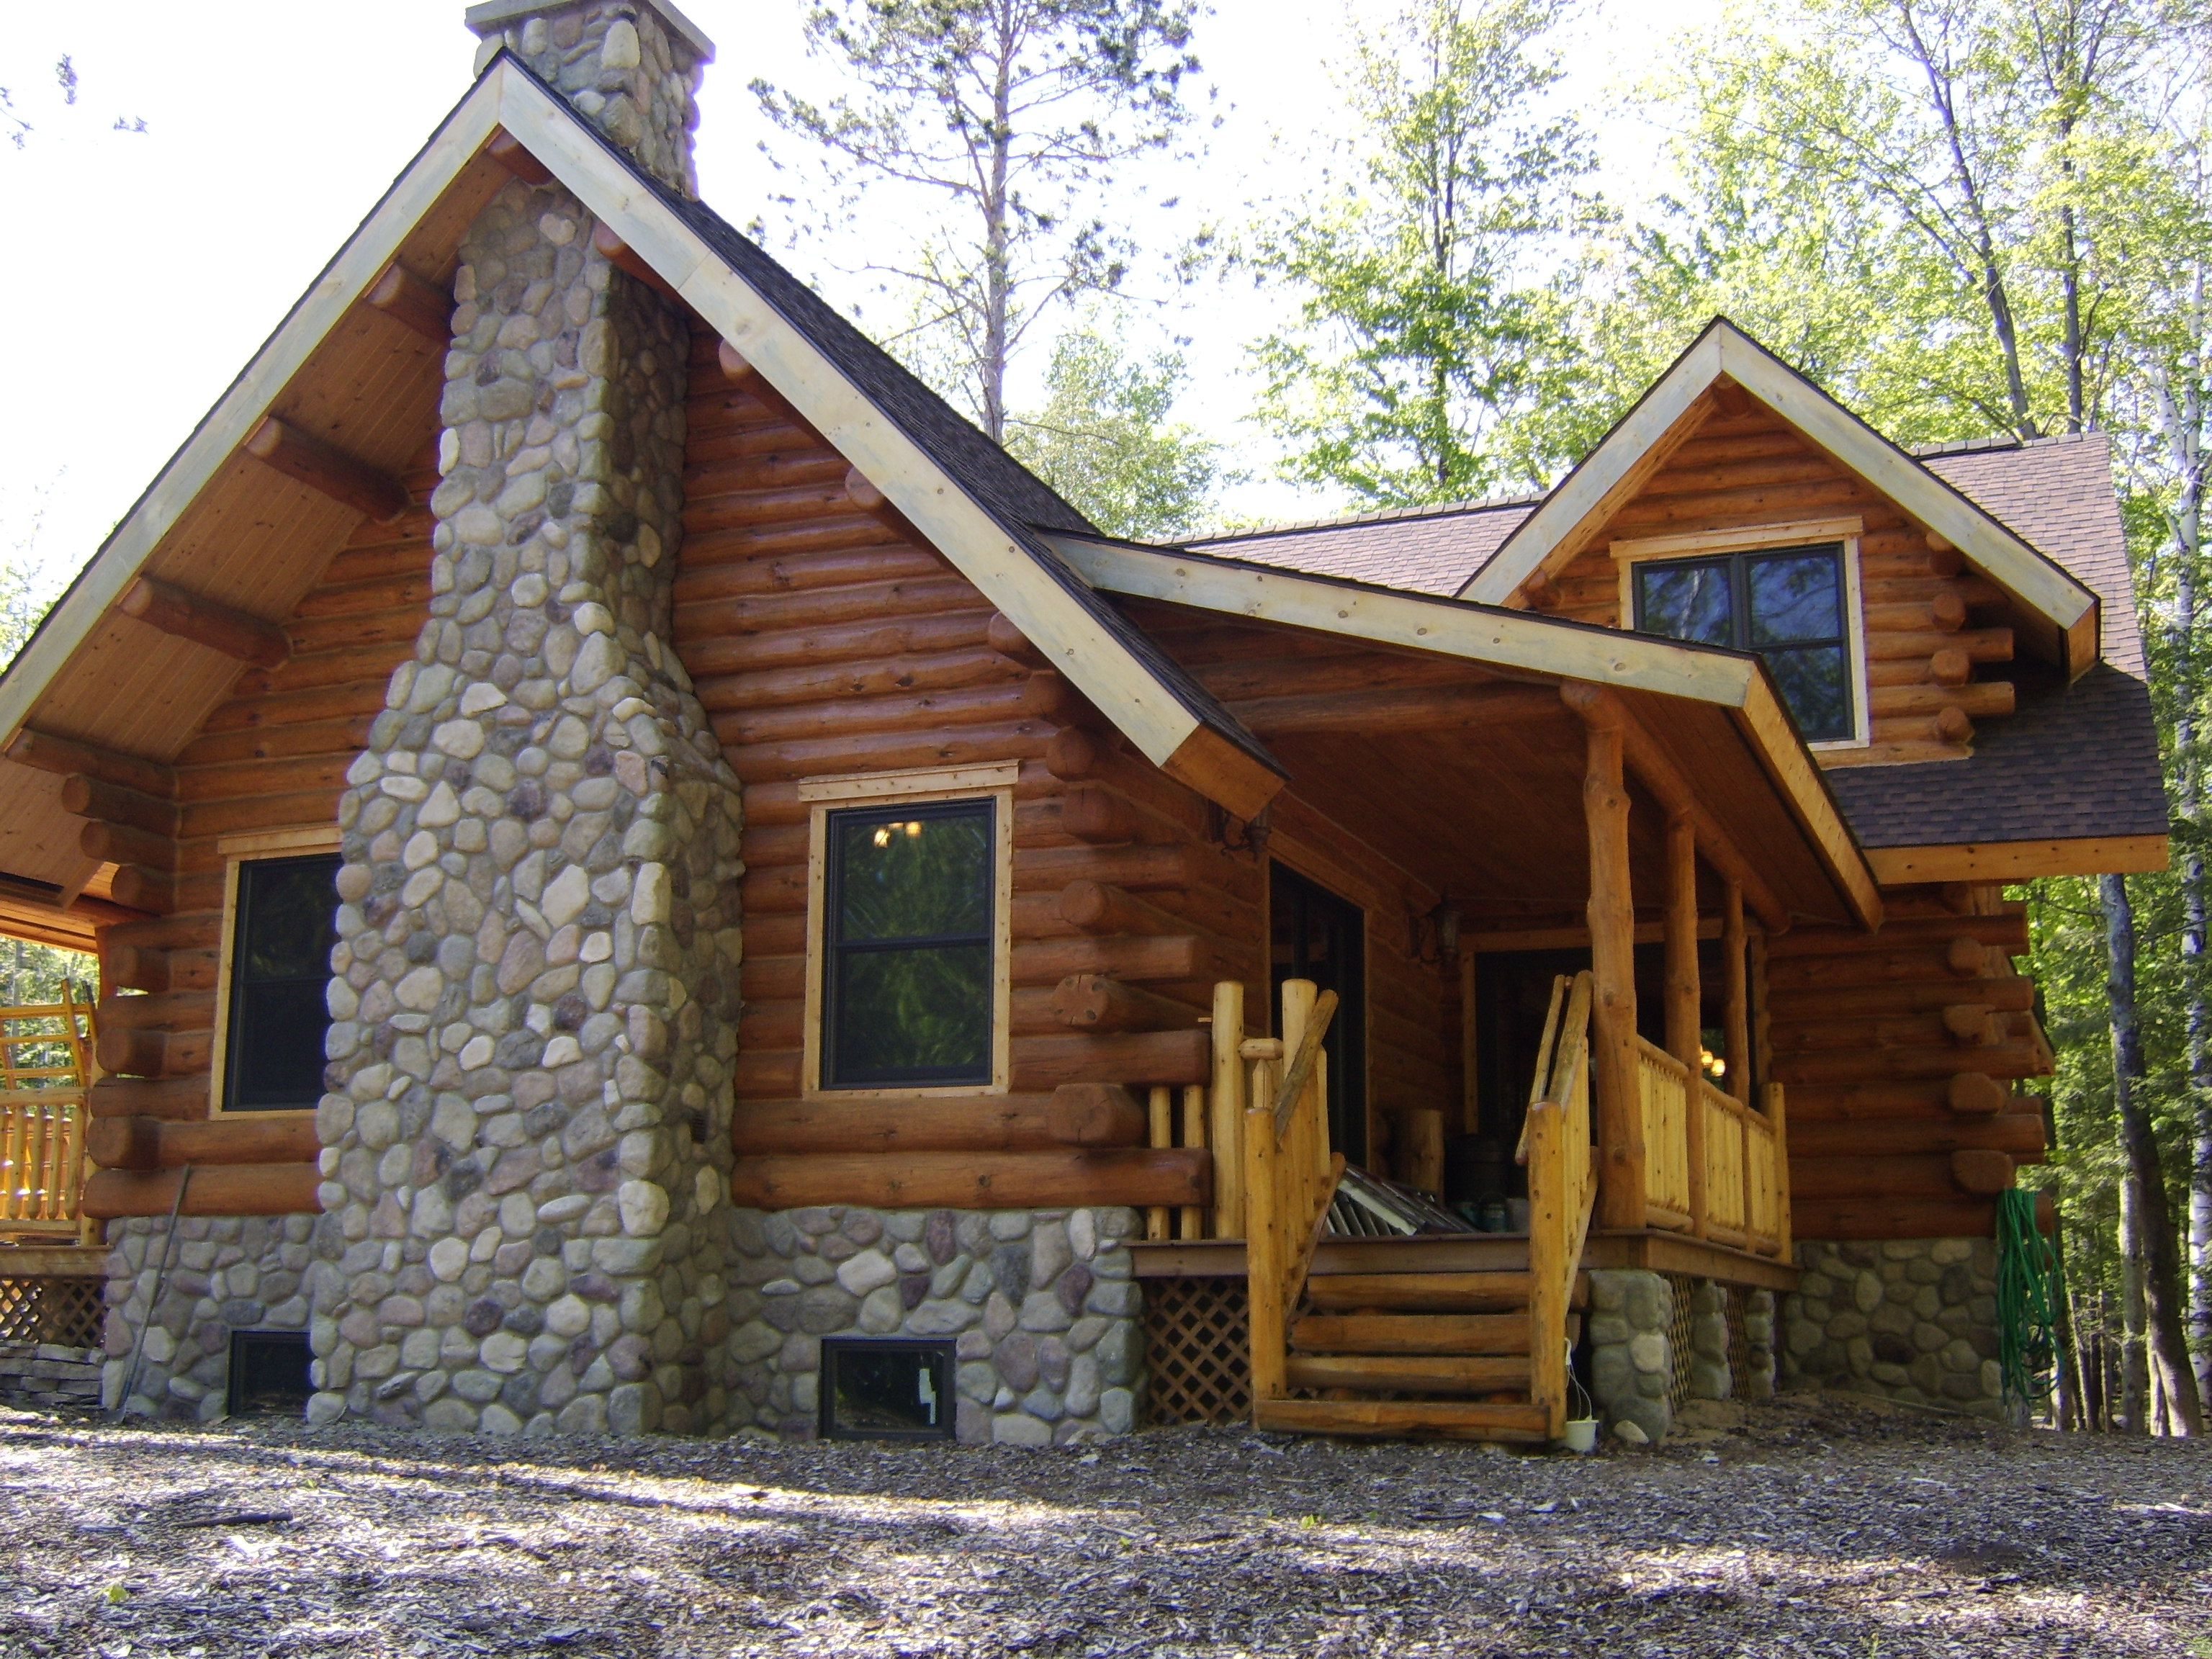 Torch Lake Cabin Rentals | Lake Michigan Vacation Rentals | Northern Michigan Cabin Rentals